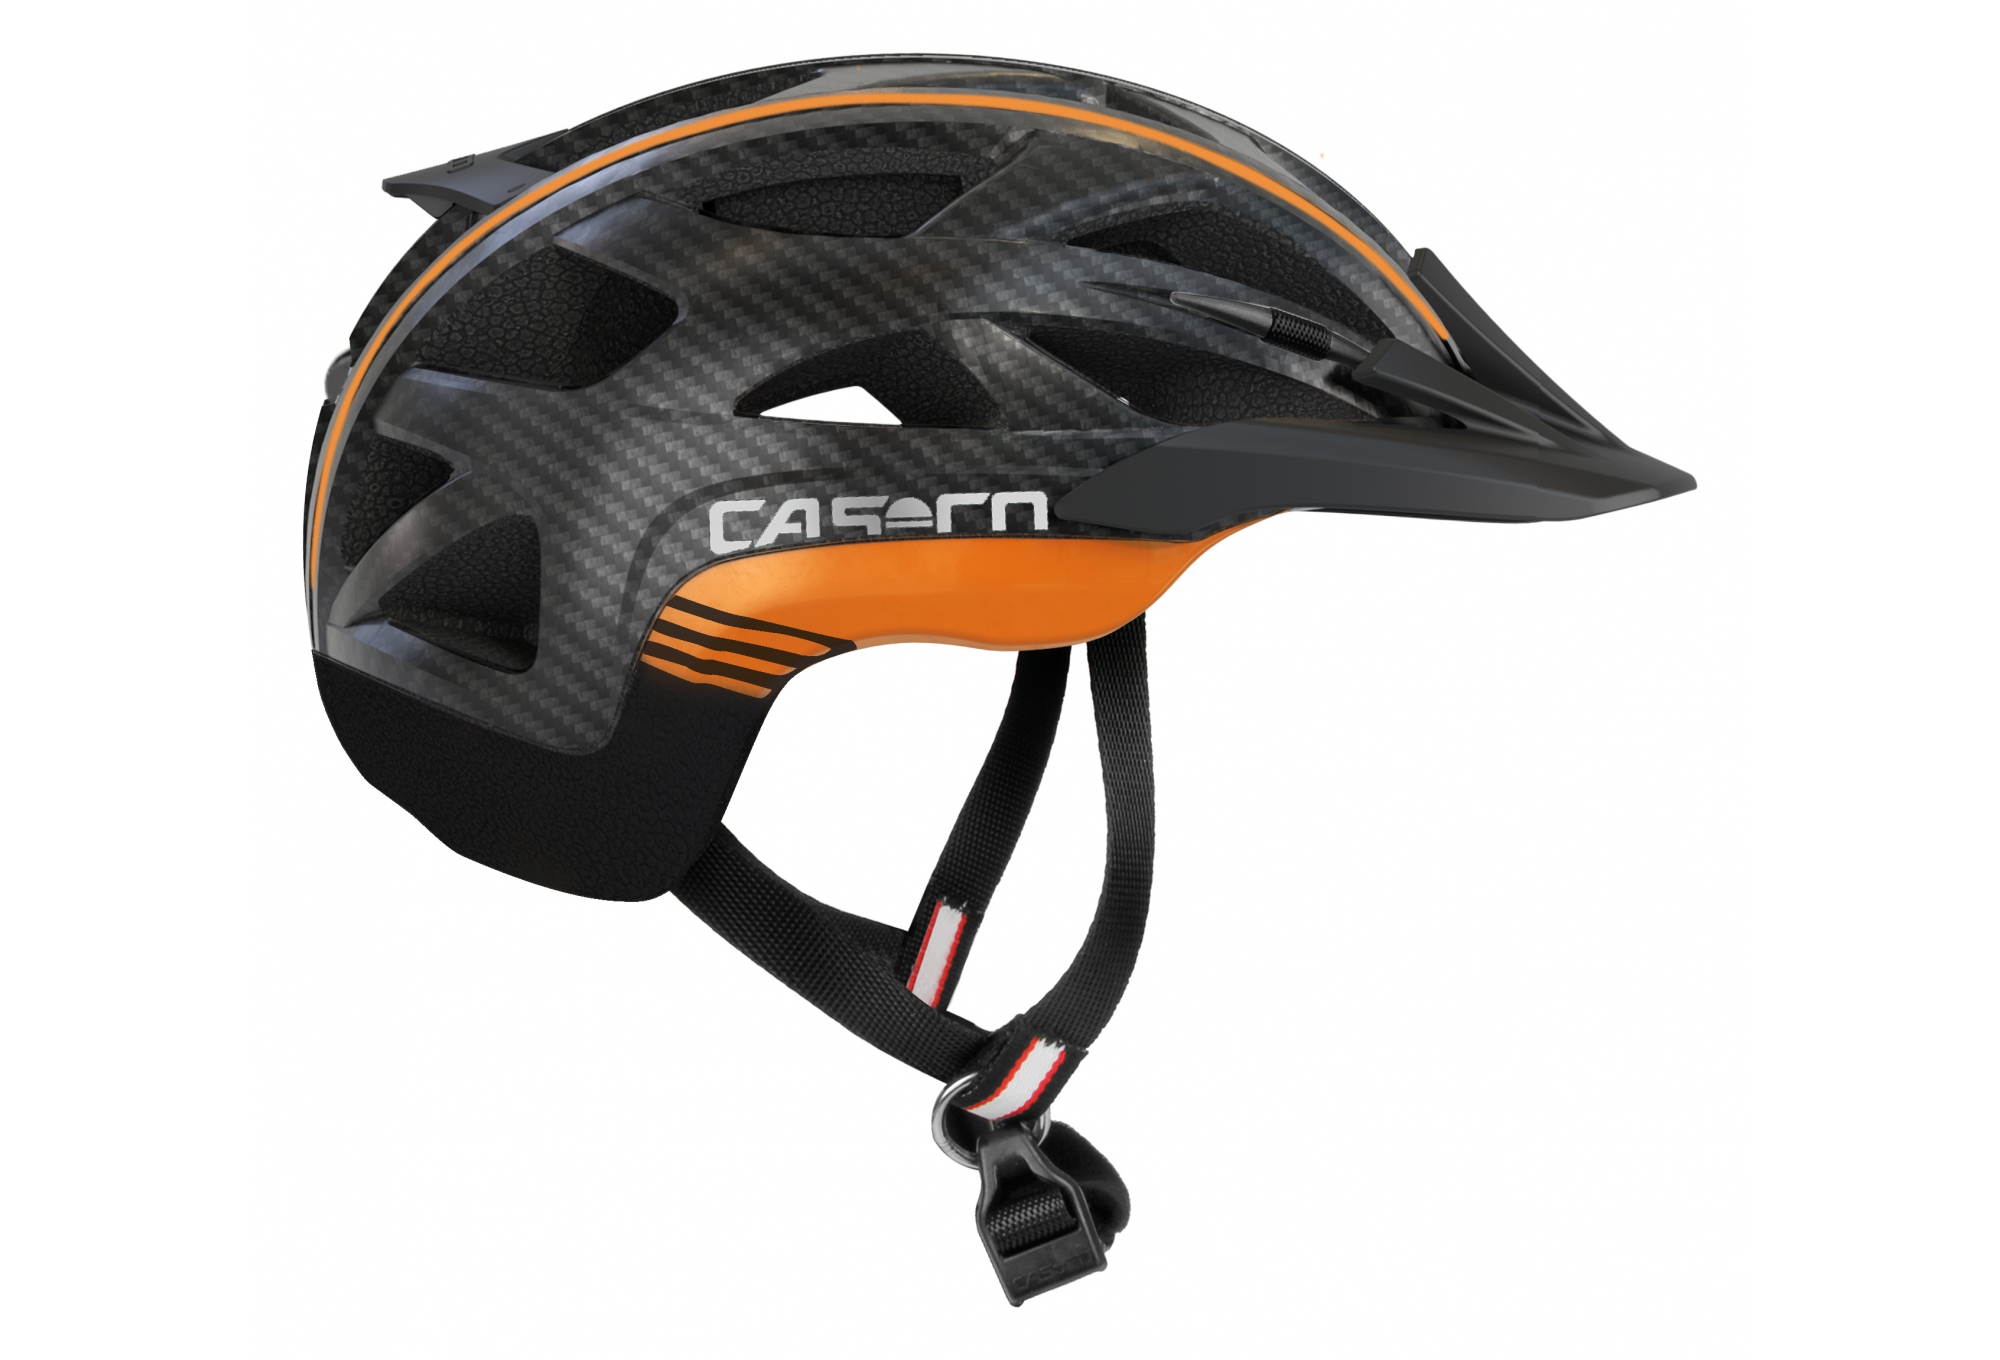 Casco active 2 schwarz-orange